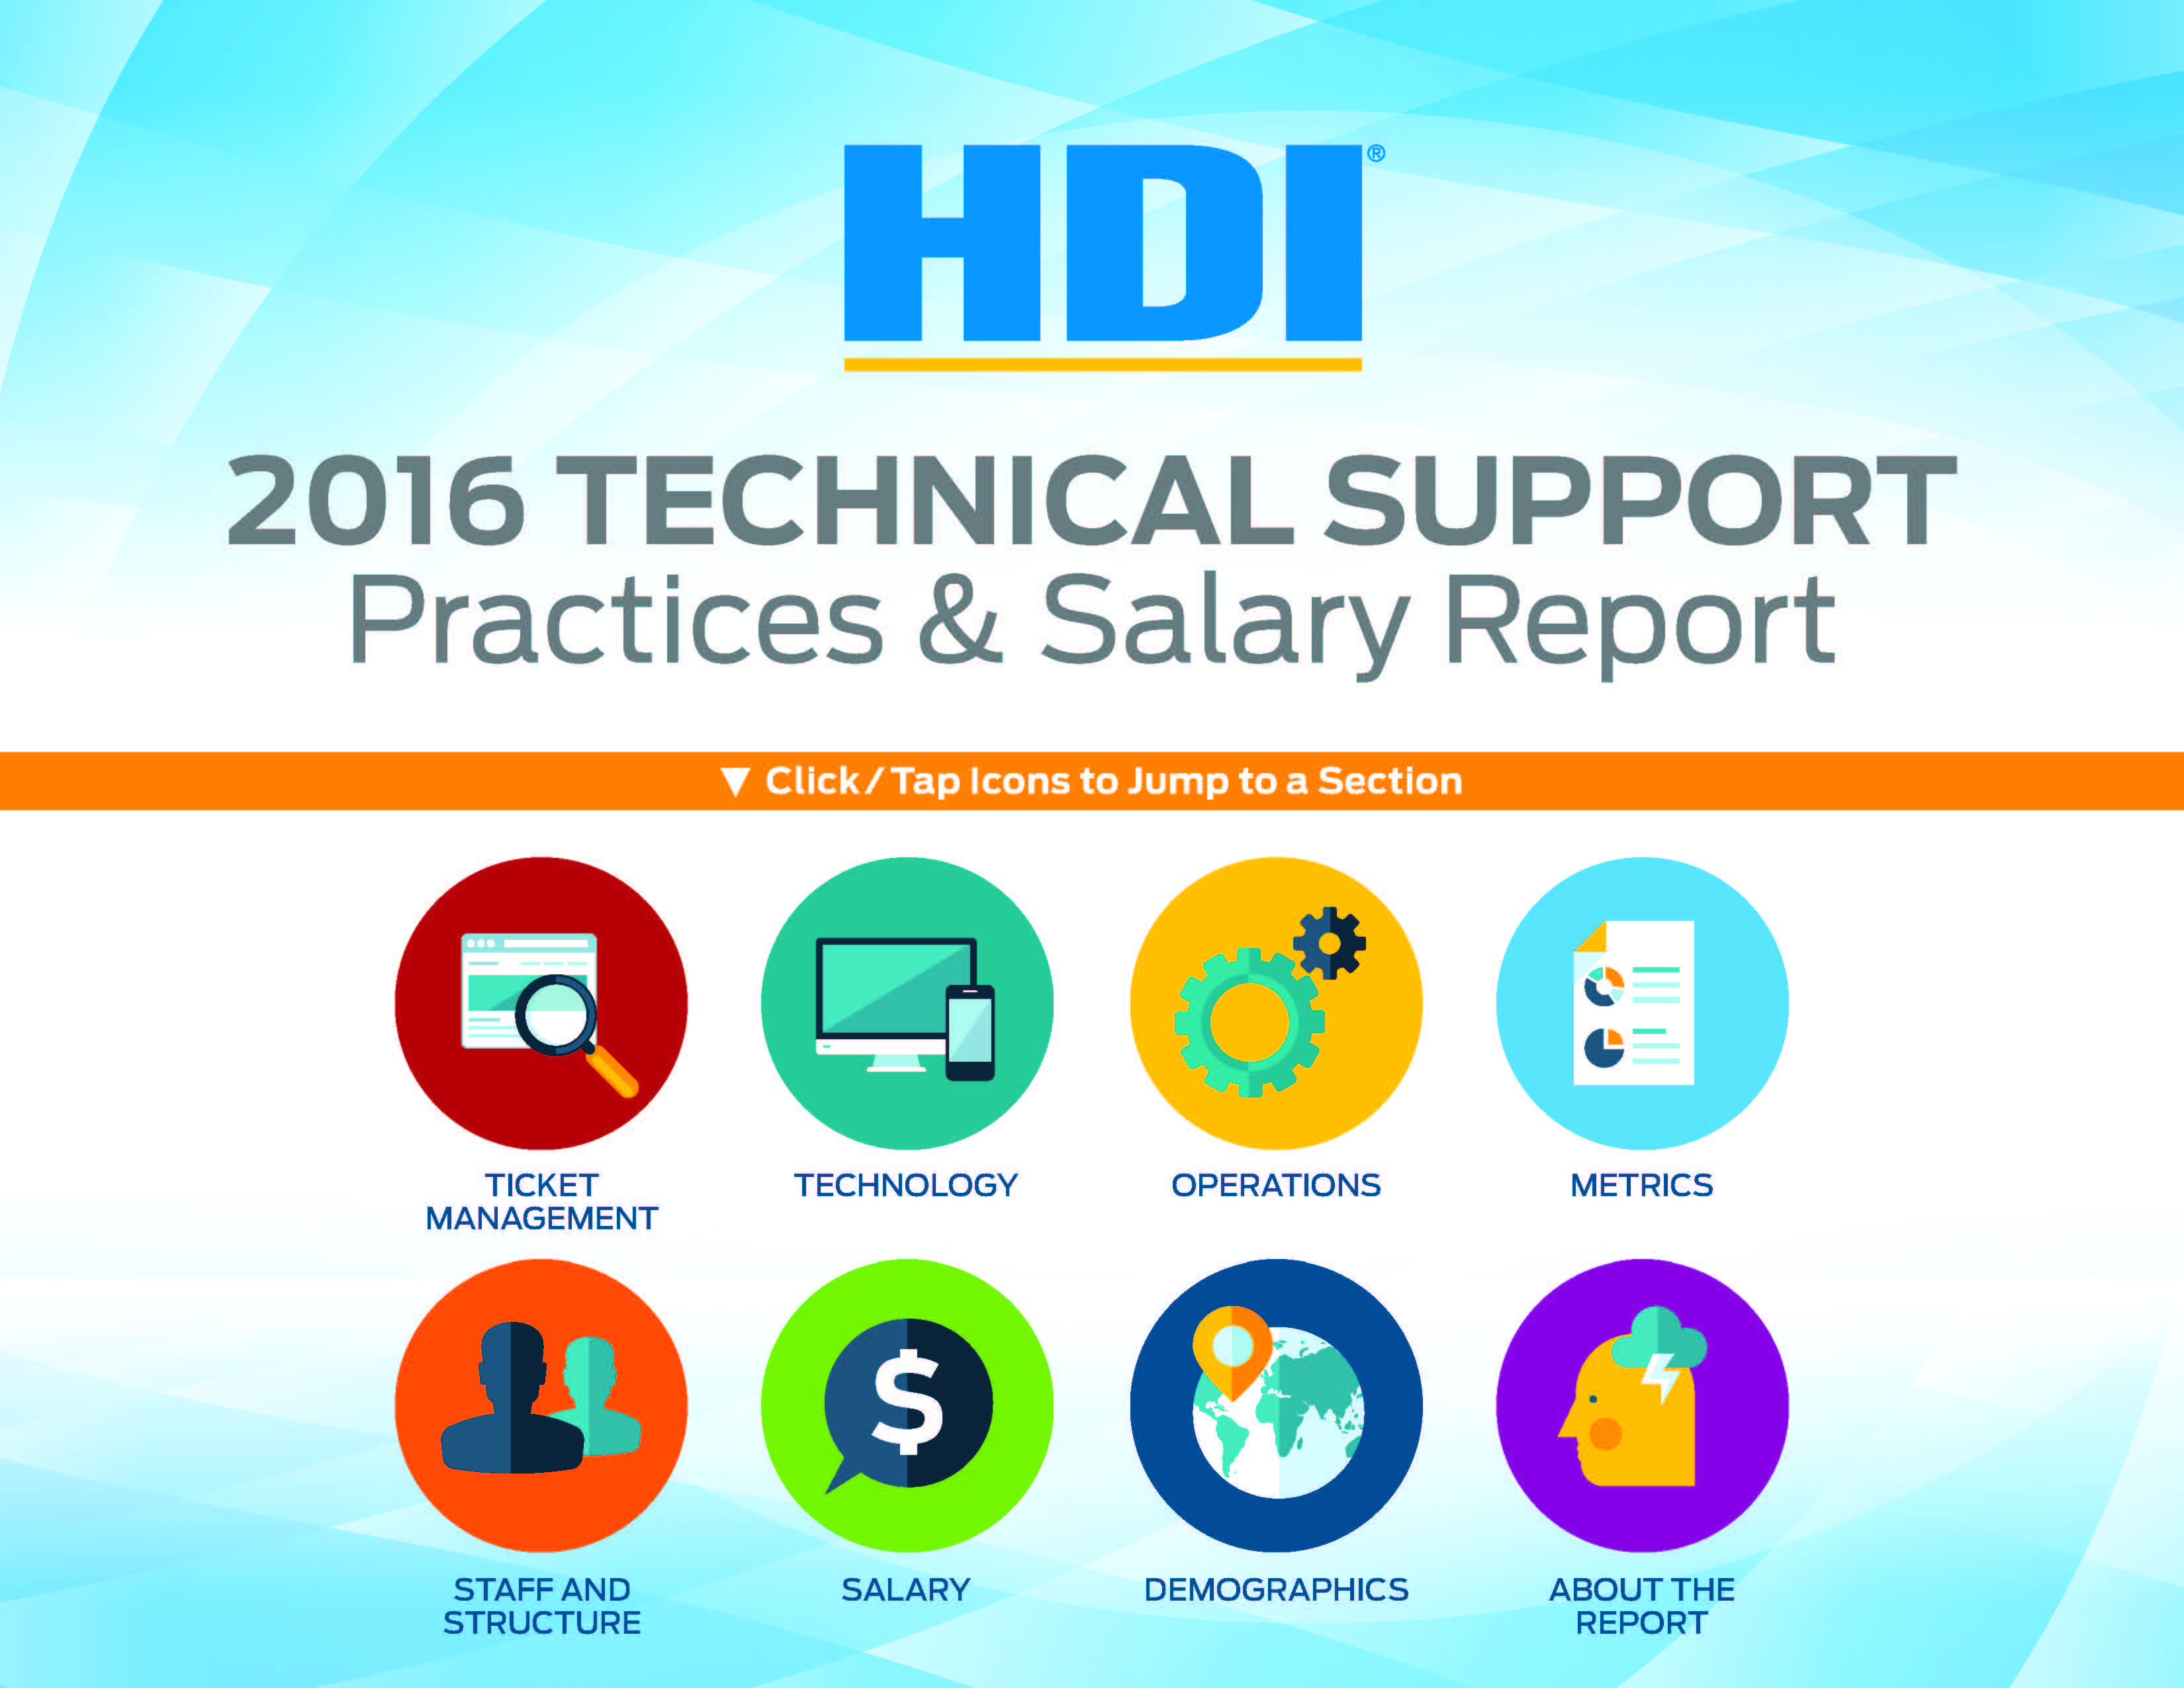 2016 Technical Support Practices & Salary Report